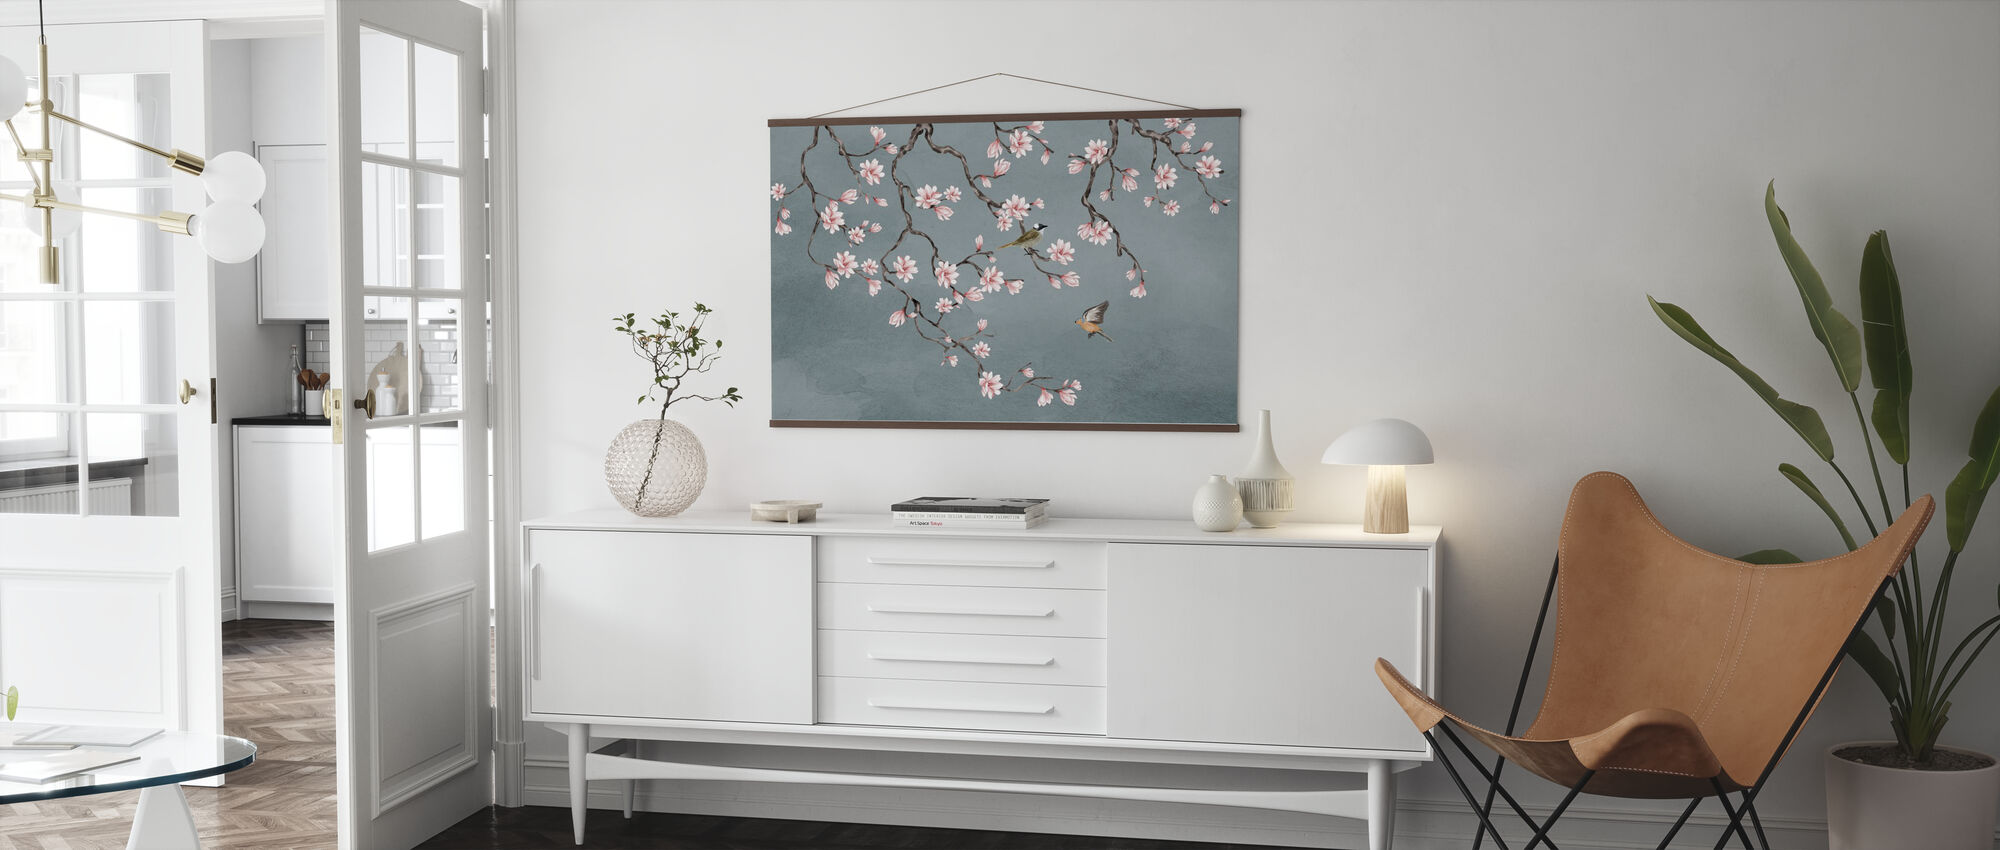 Birds Meeting Place - Poster - Living Room